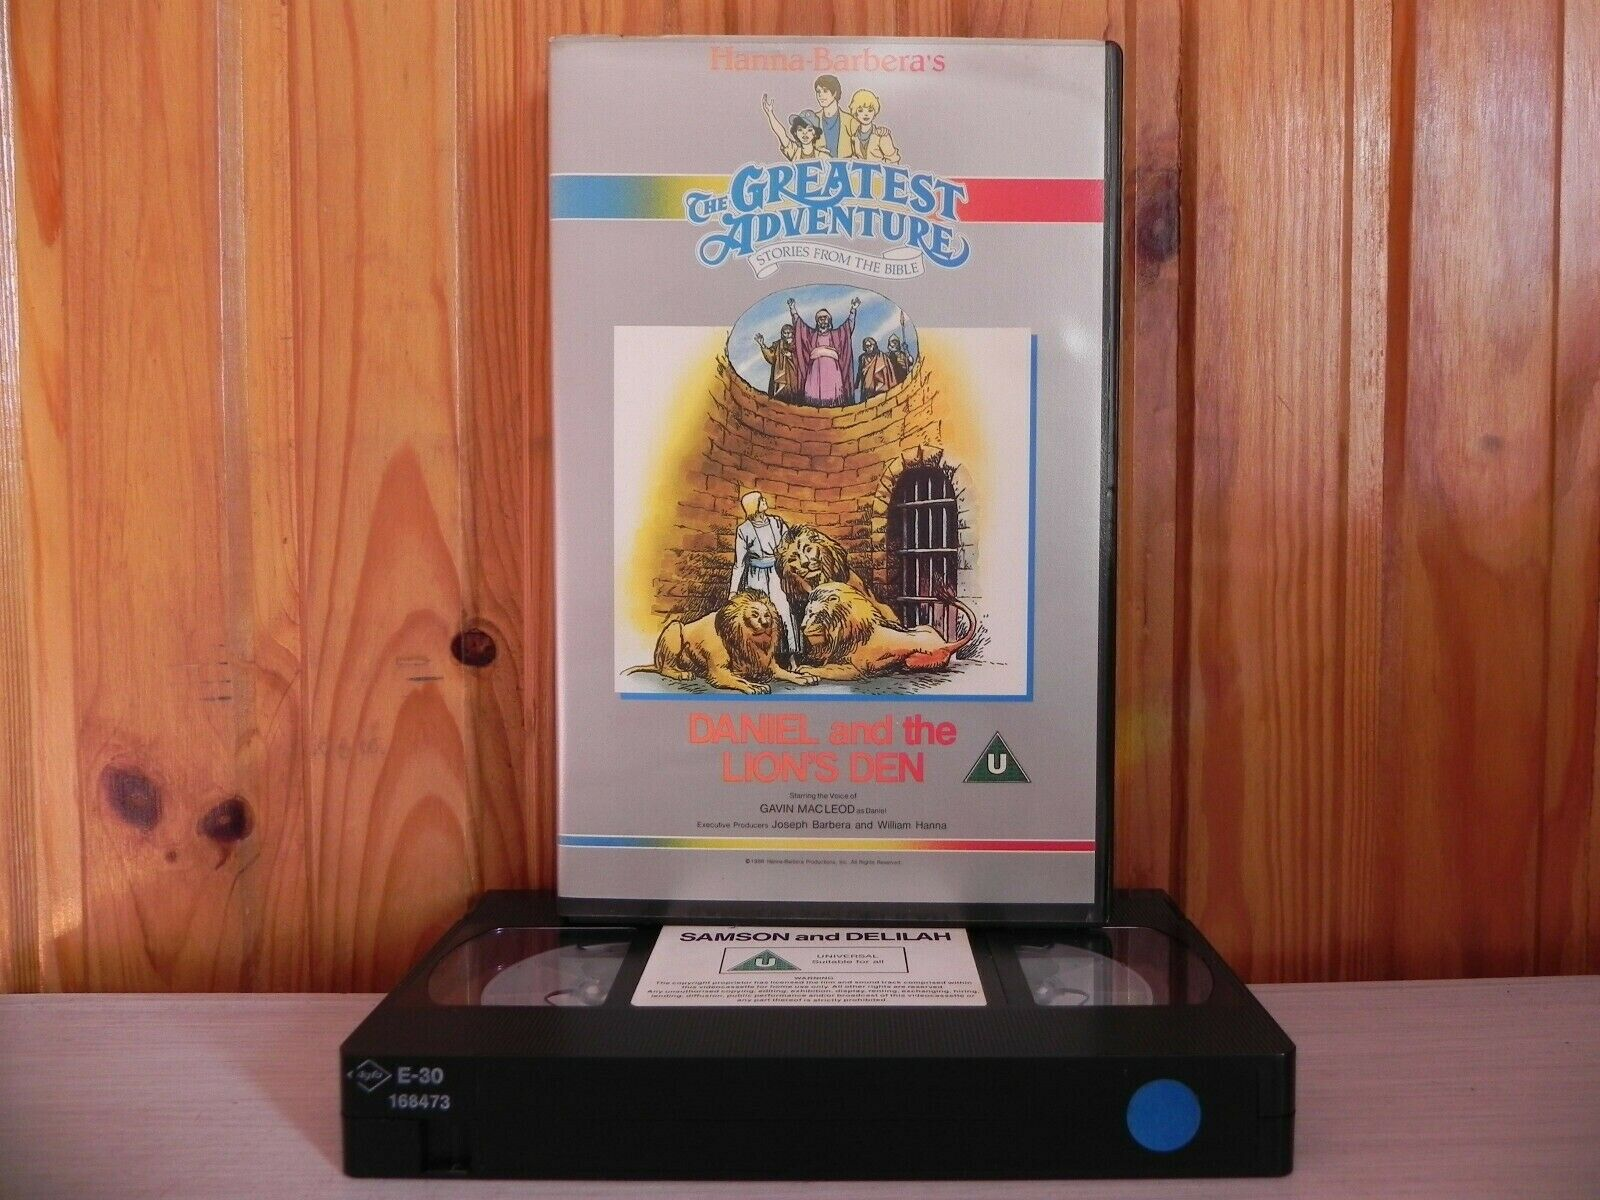 Stories From The Bible [Hanna Barbera]: Daniel & The Lions Den - Large Box - Pal VHS